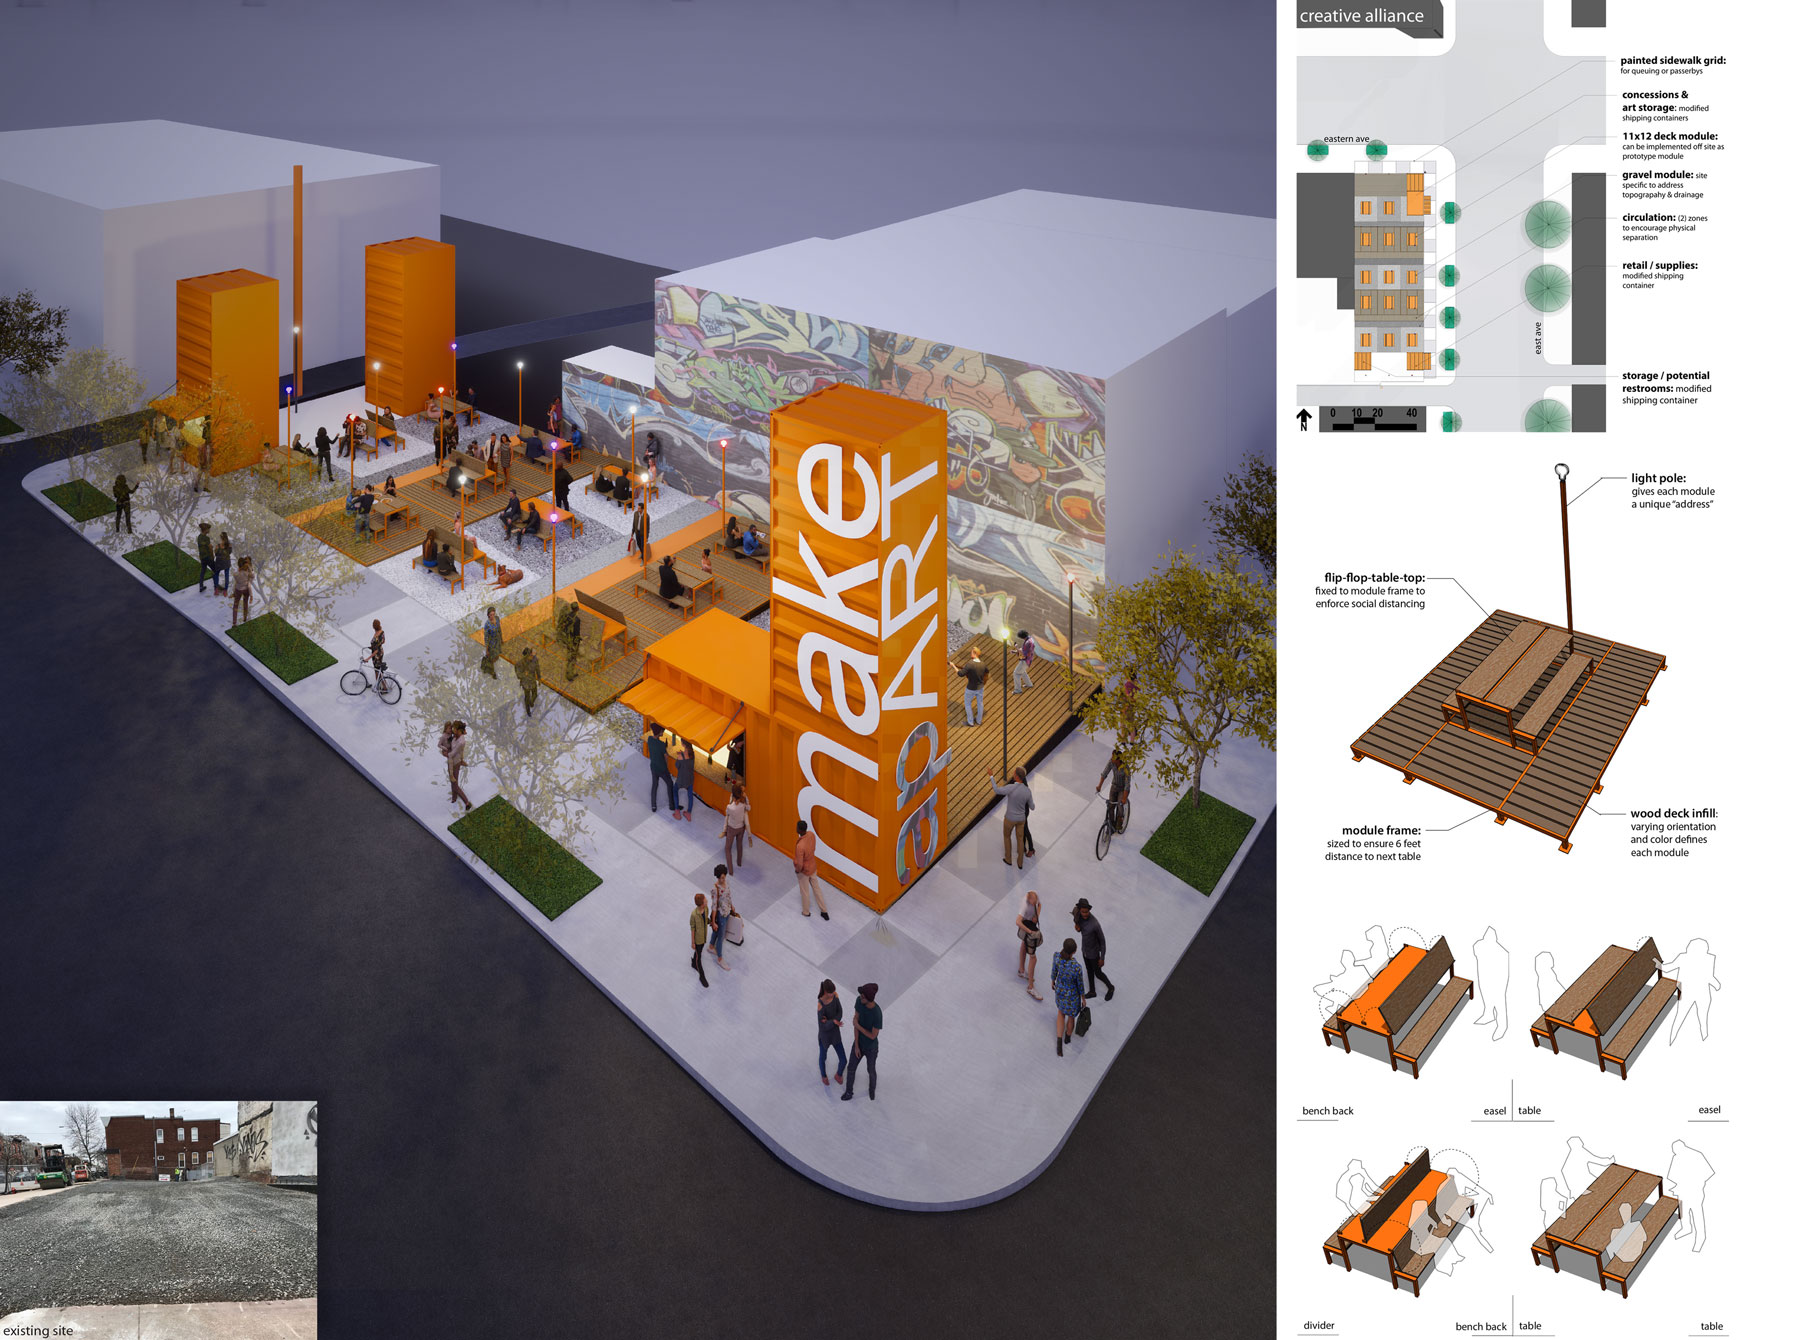 Rendering of a streetscape with orange containers